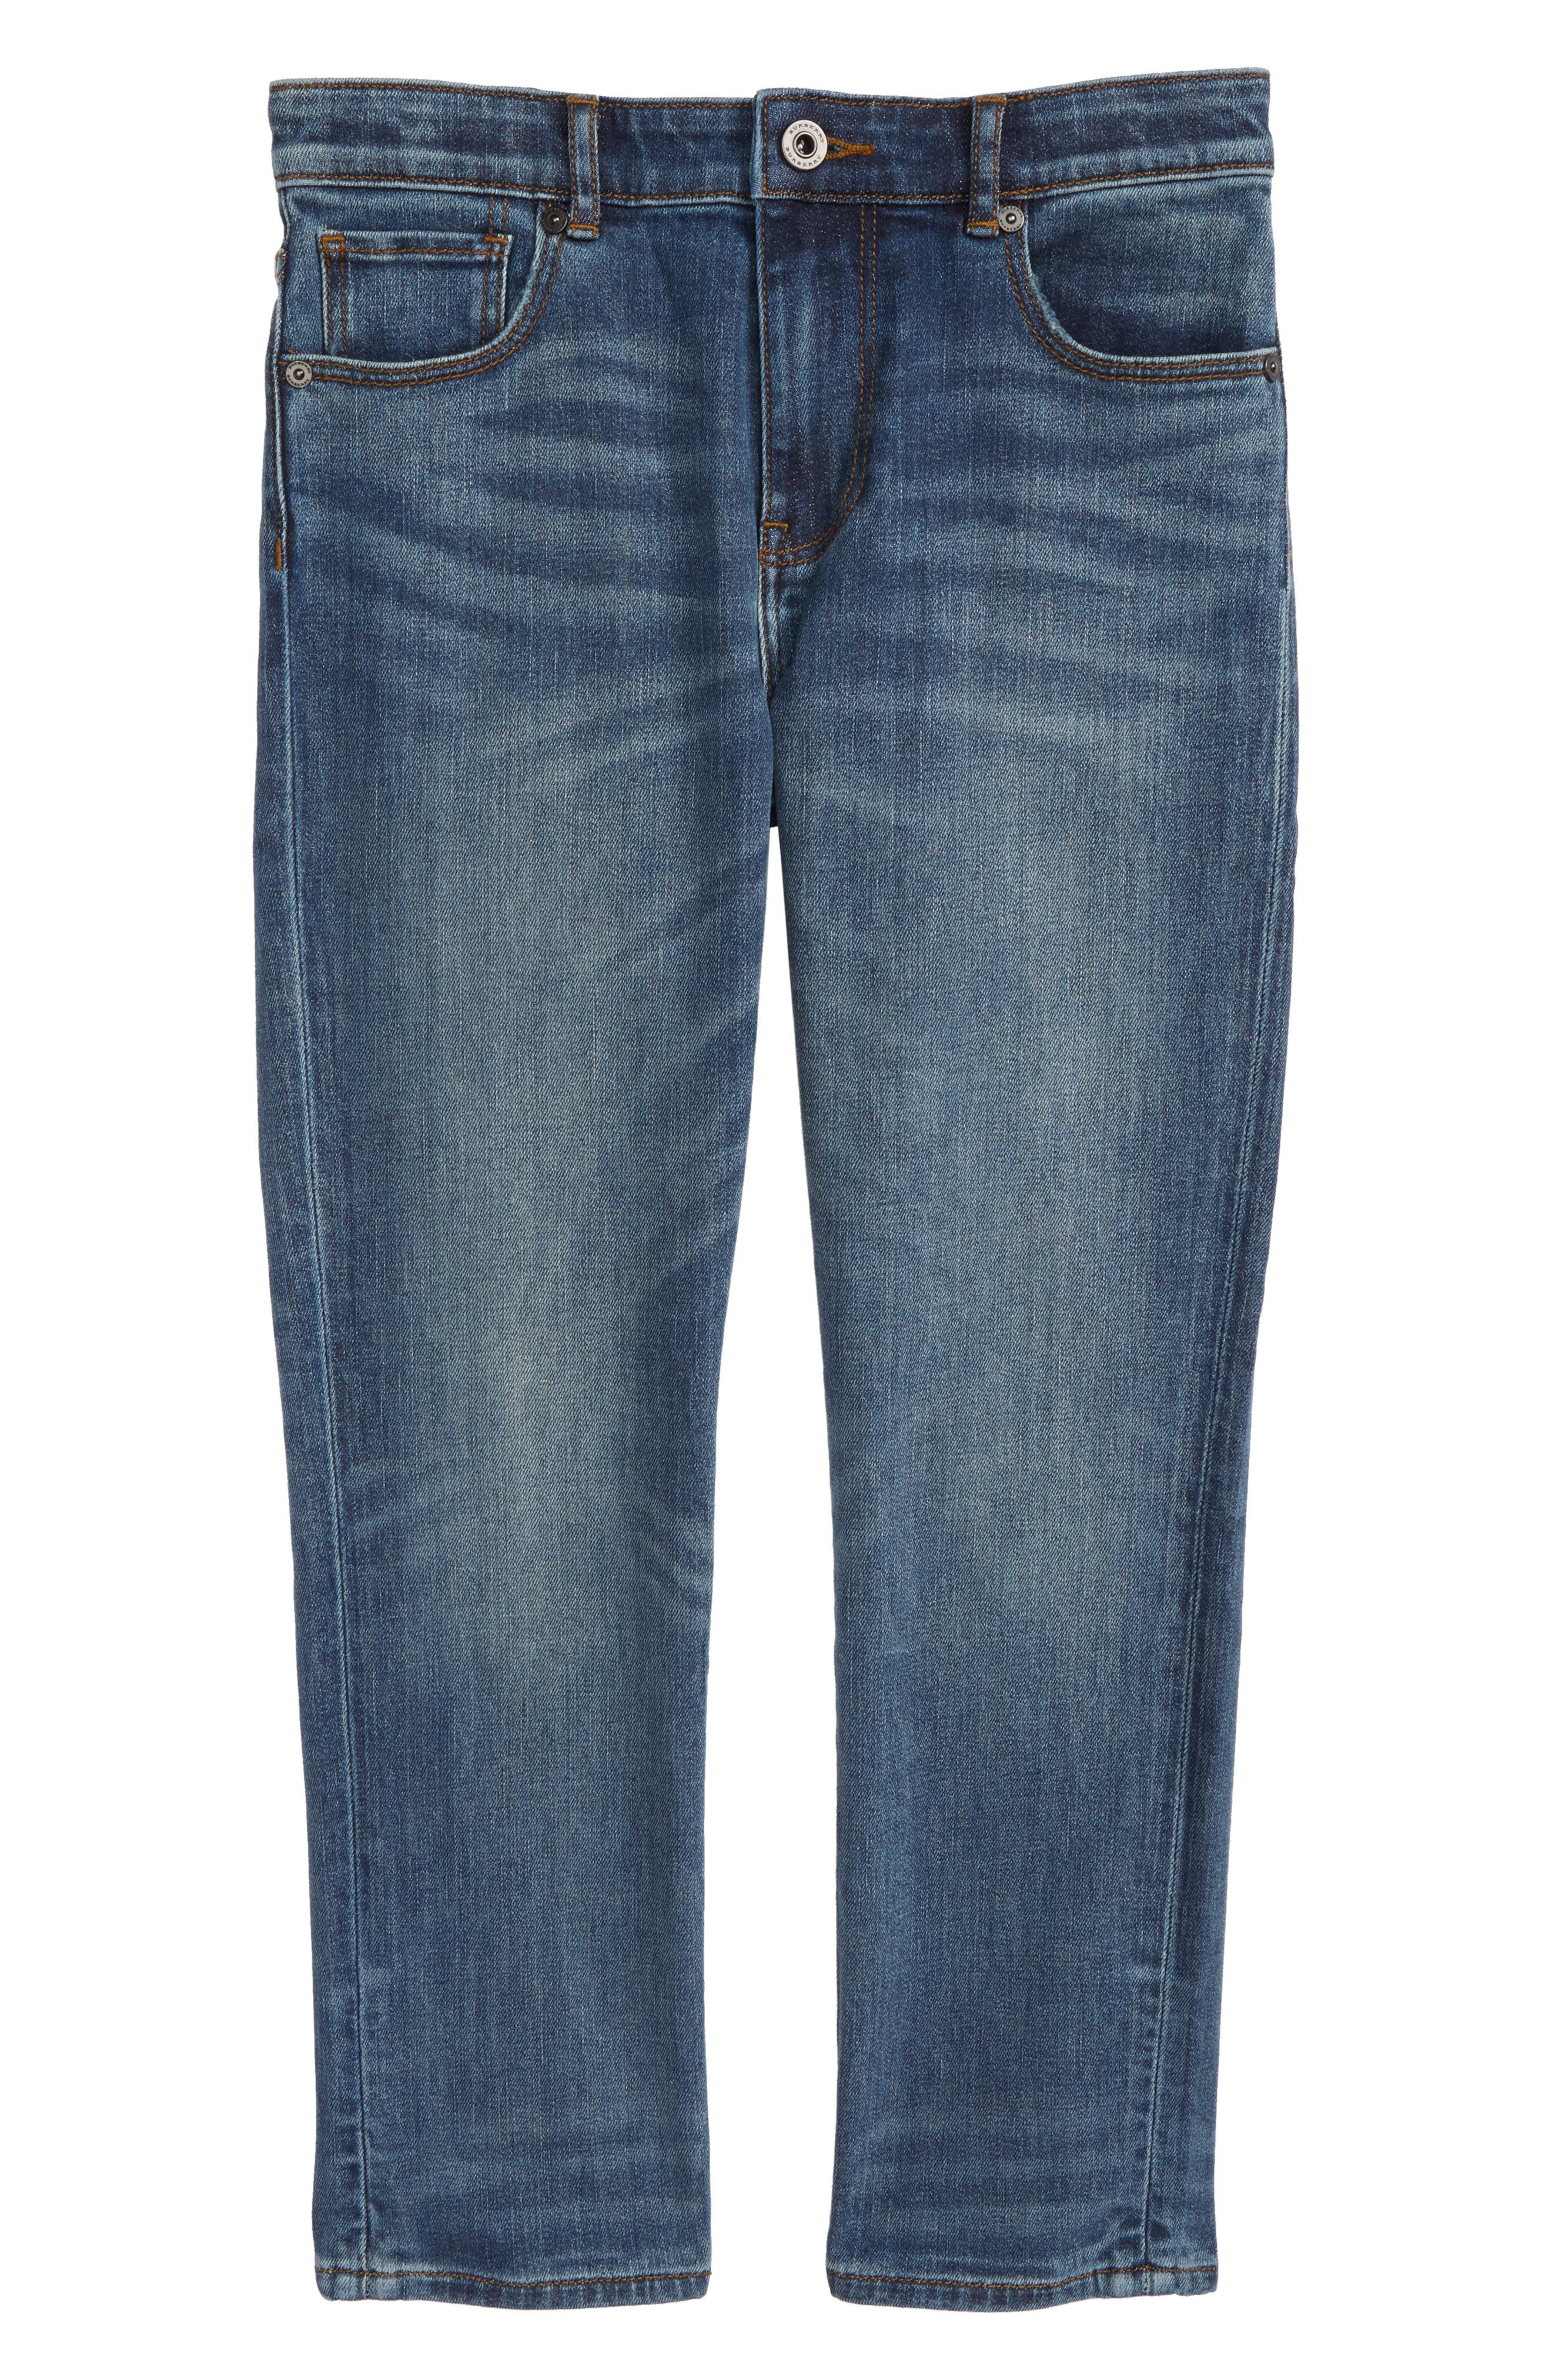 BURBERRY Relaxed Fit Jeans, Main, color, 412